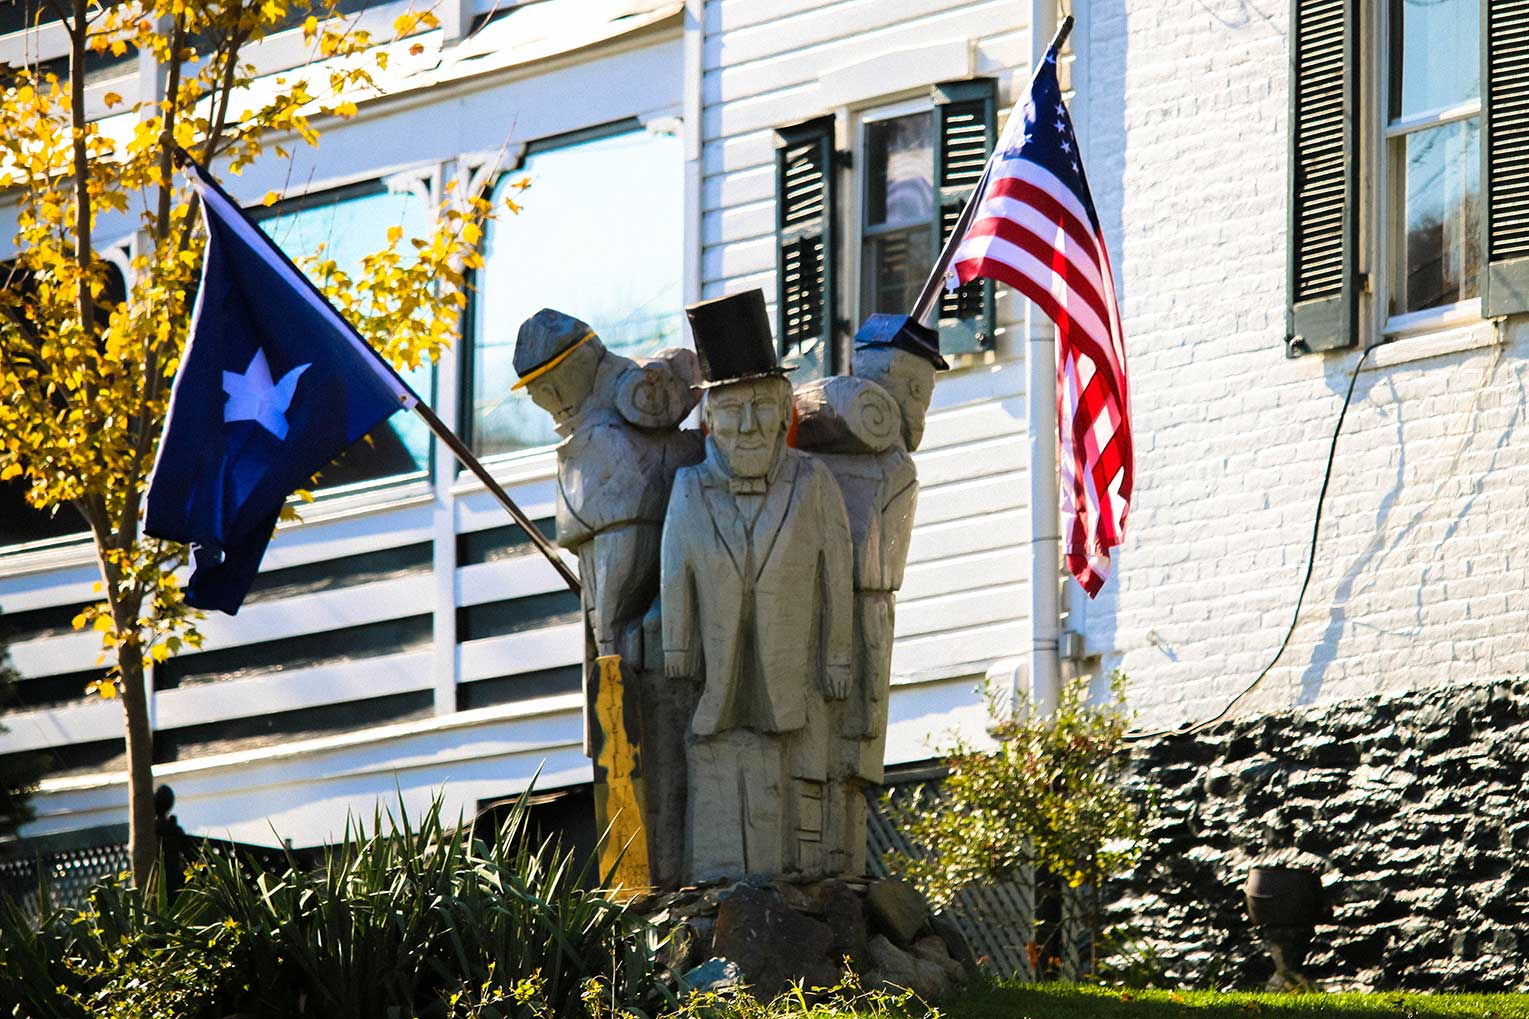 Statue with flags in Harper's Ferry, WV